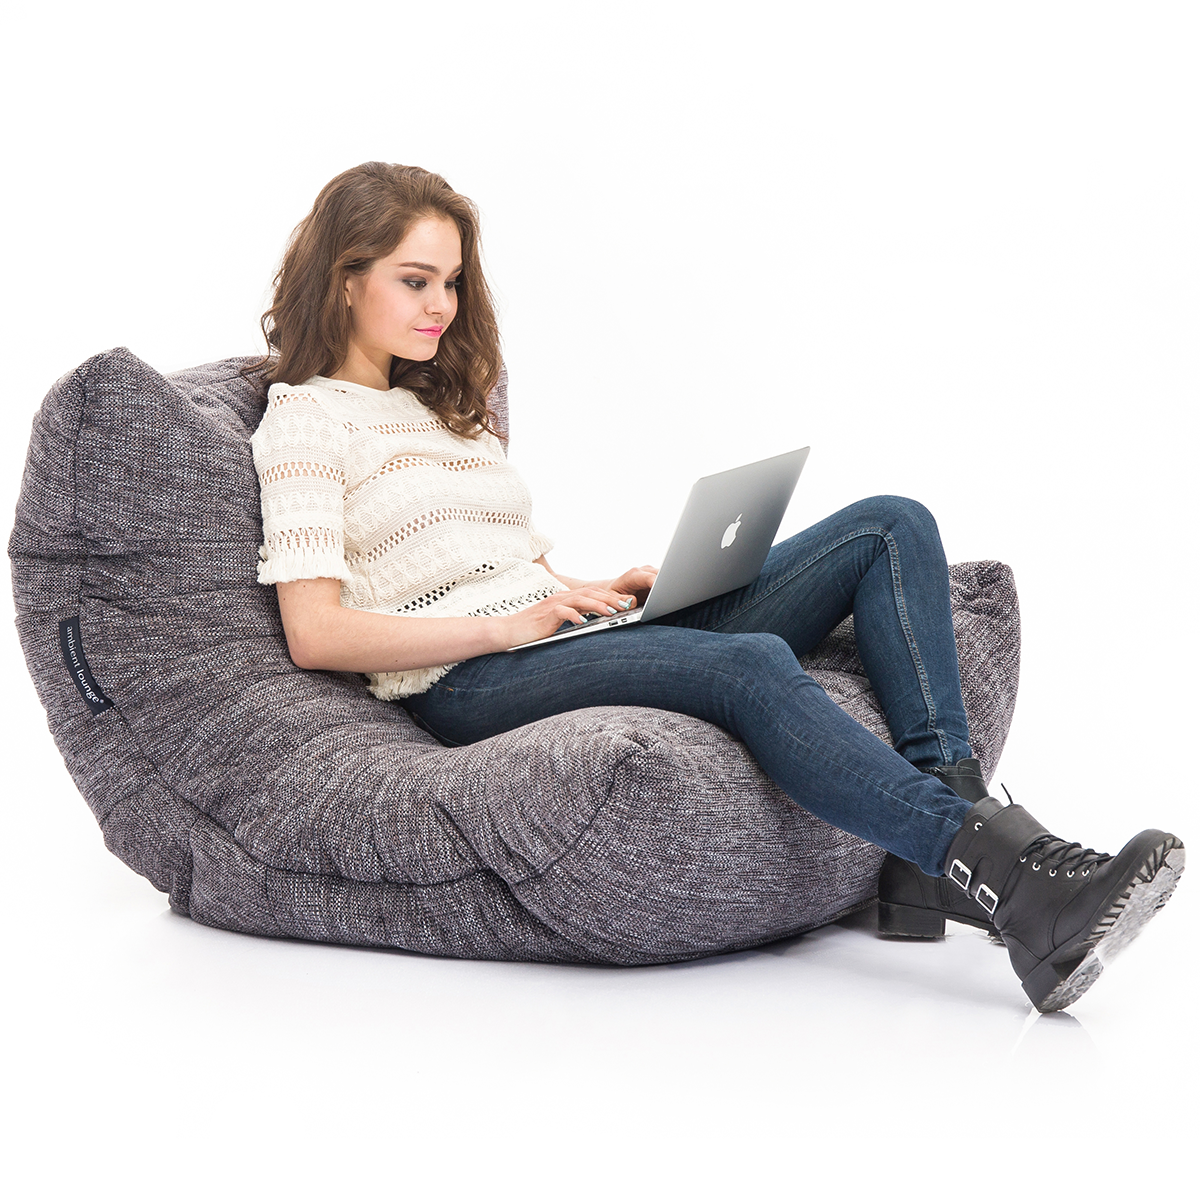 Acoustic Sofa in Luscious Grey for Working and Reading